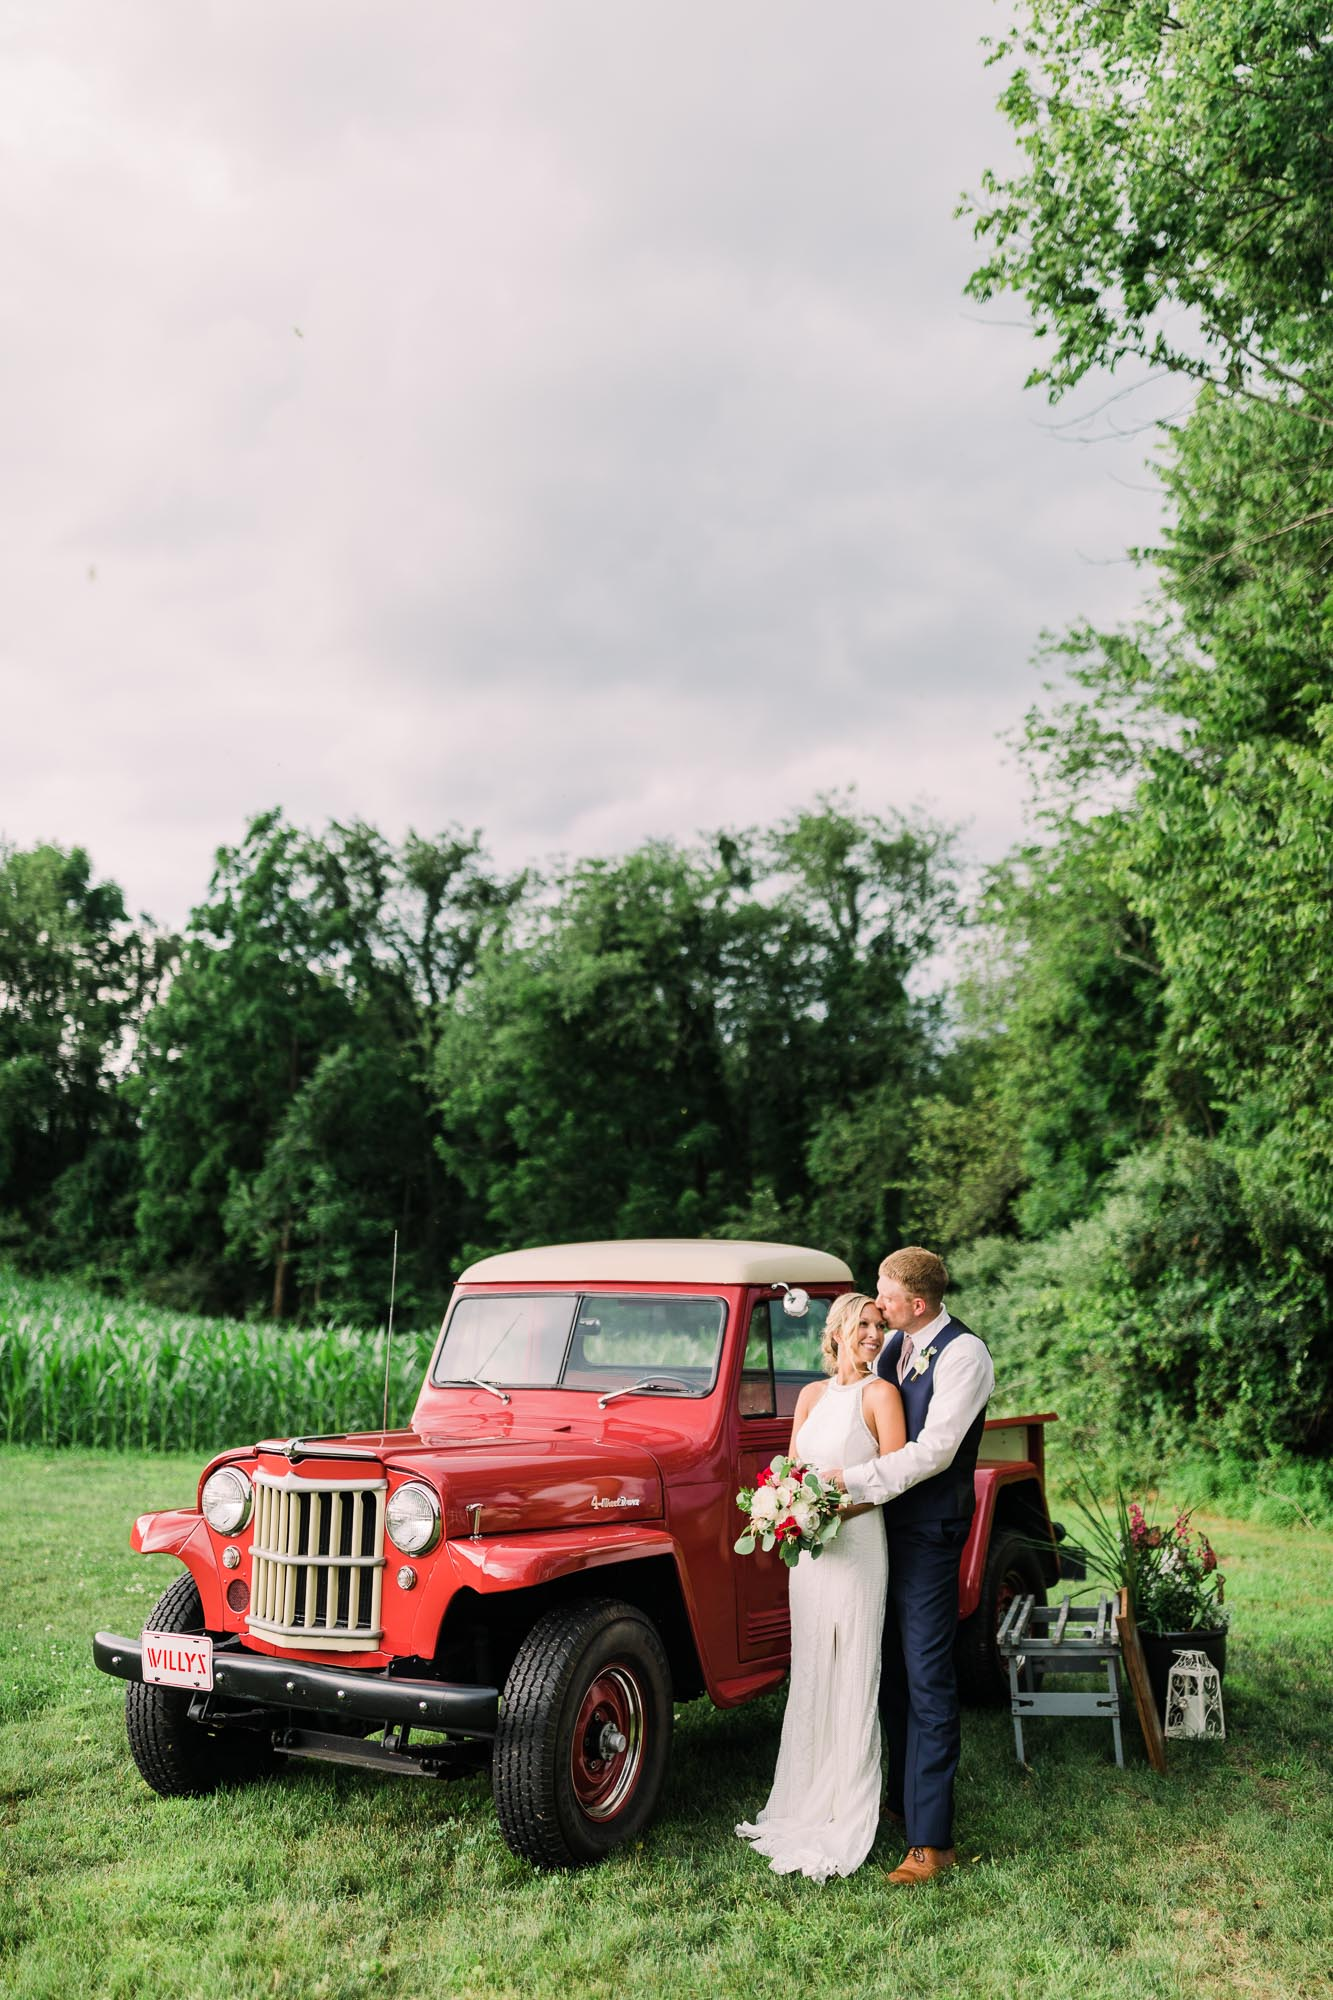 Muncy-backyard-farm-wedding-7909.jpg